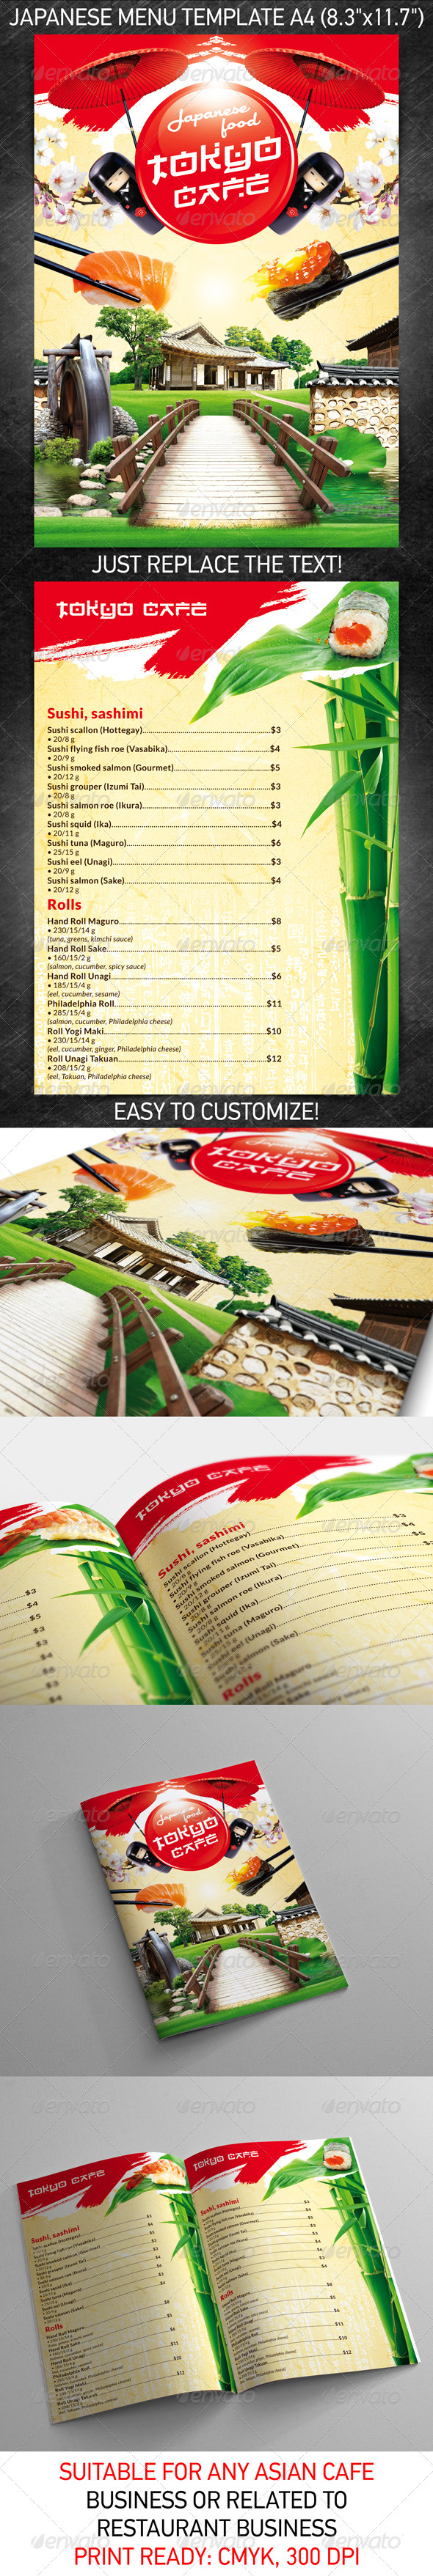 Japanese Menu Template - Food Menus Print Templates